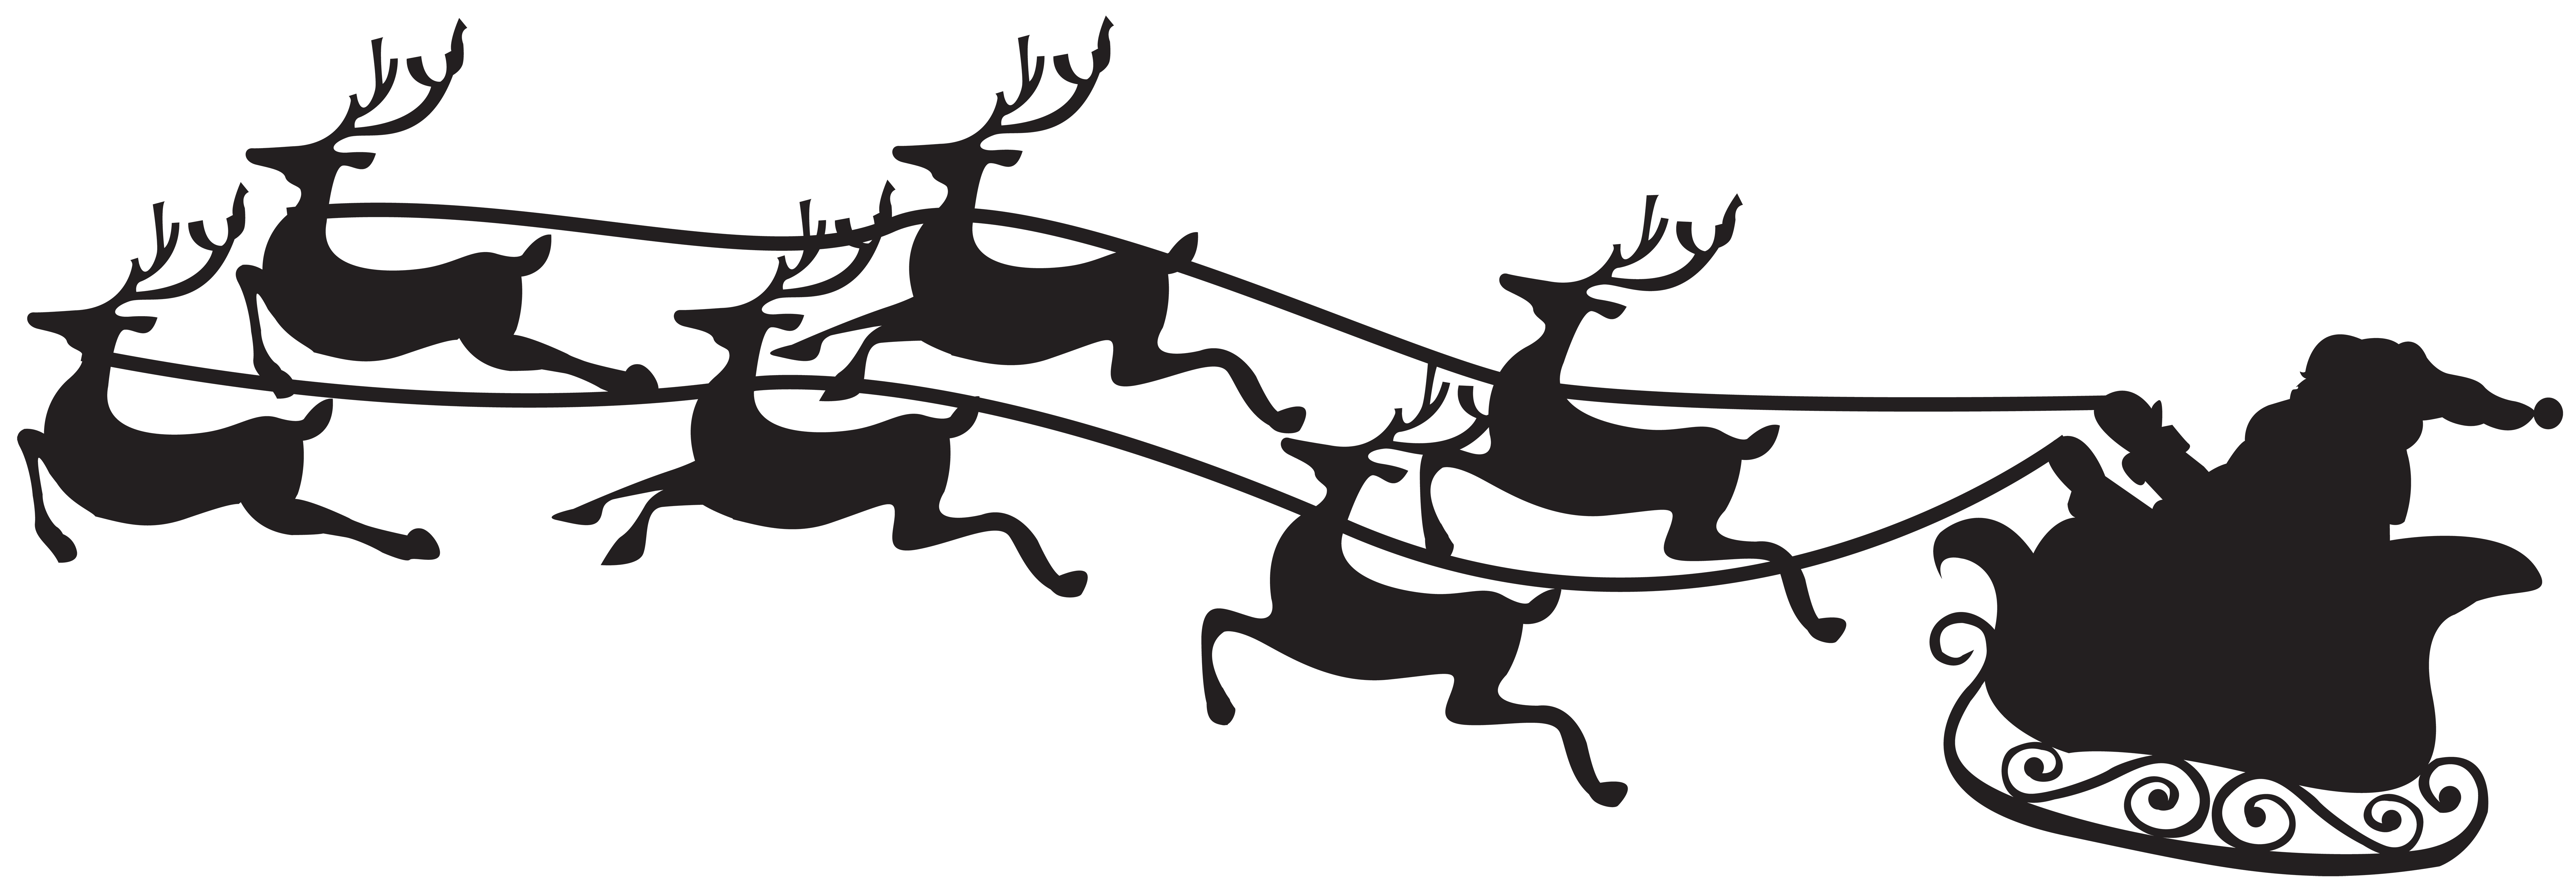 Santa and reindeer silhouette png. On sled clip art